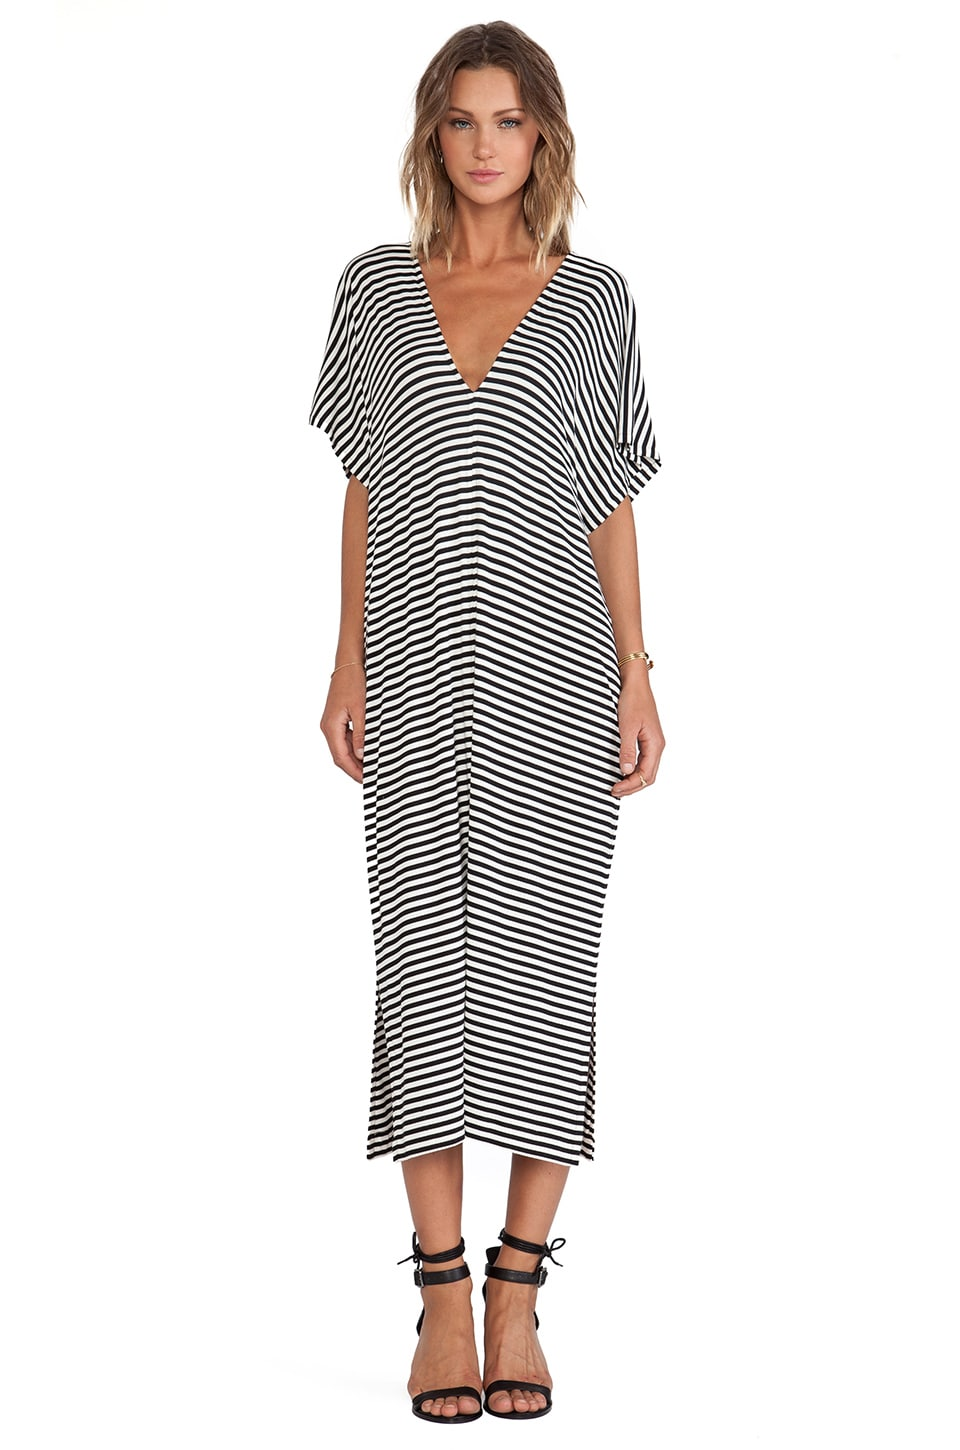 Erin Kleinberg Iseline Maxi Dress in Black & White Stripe